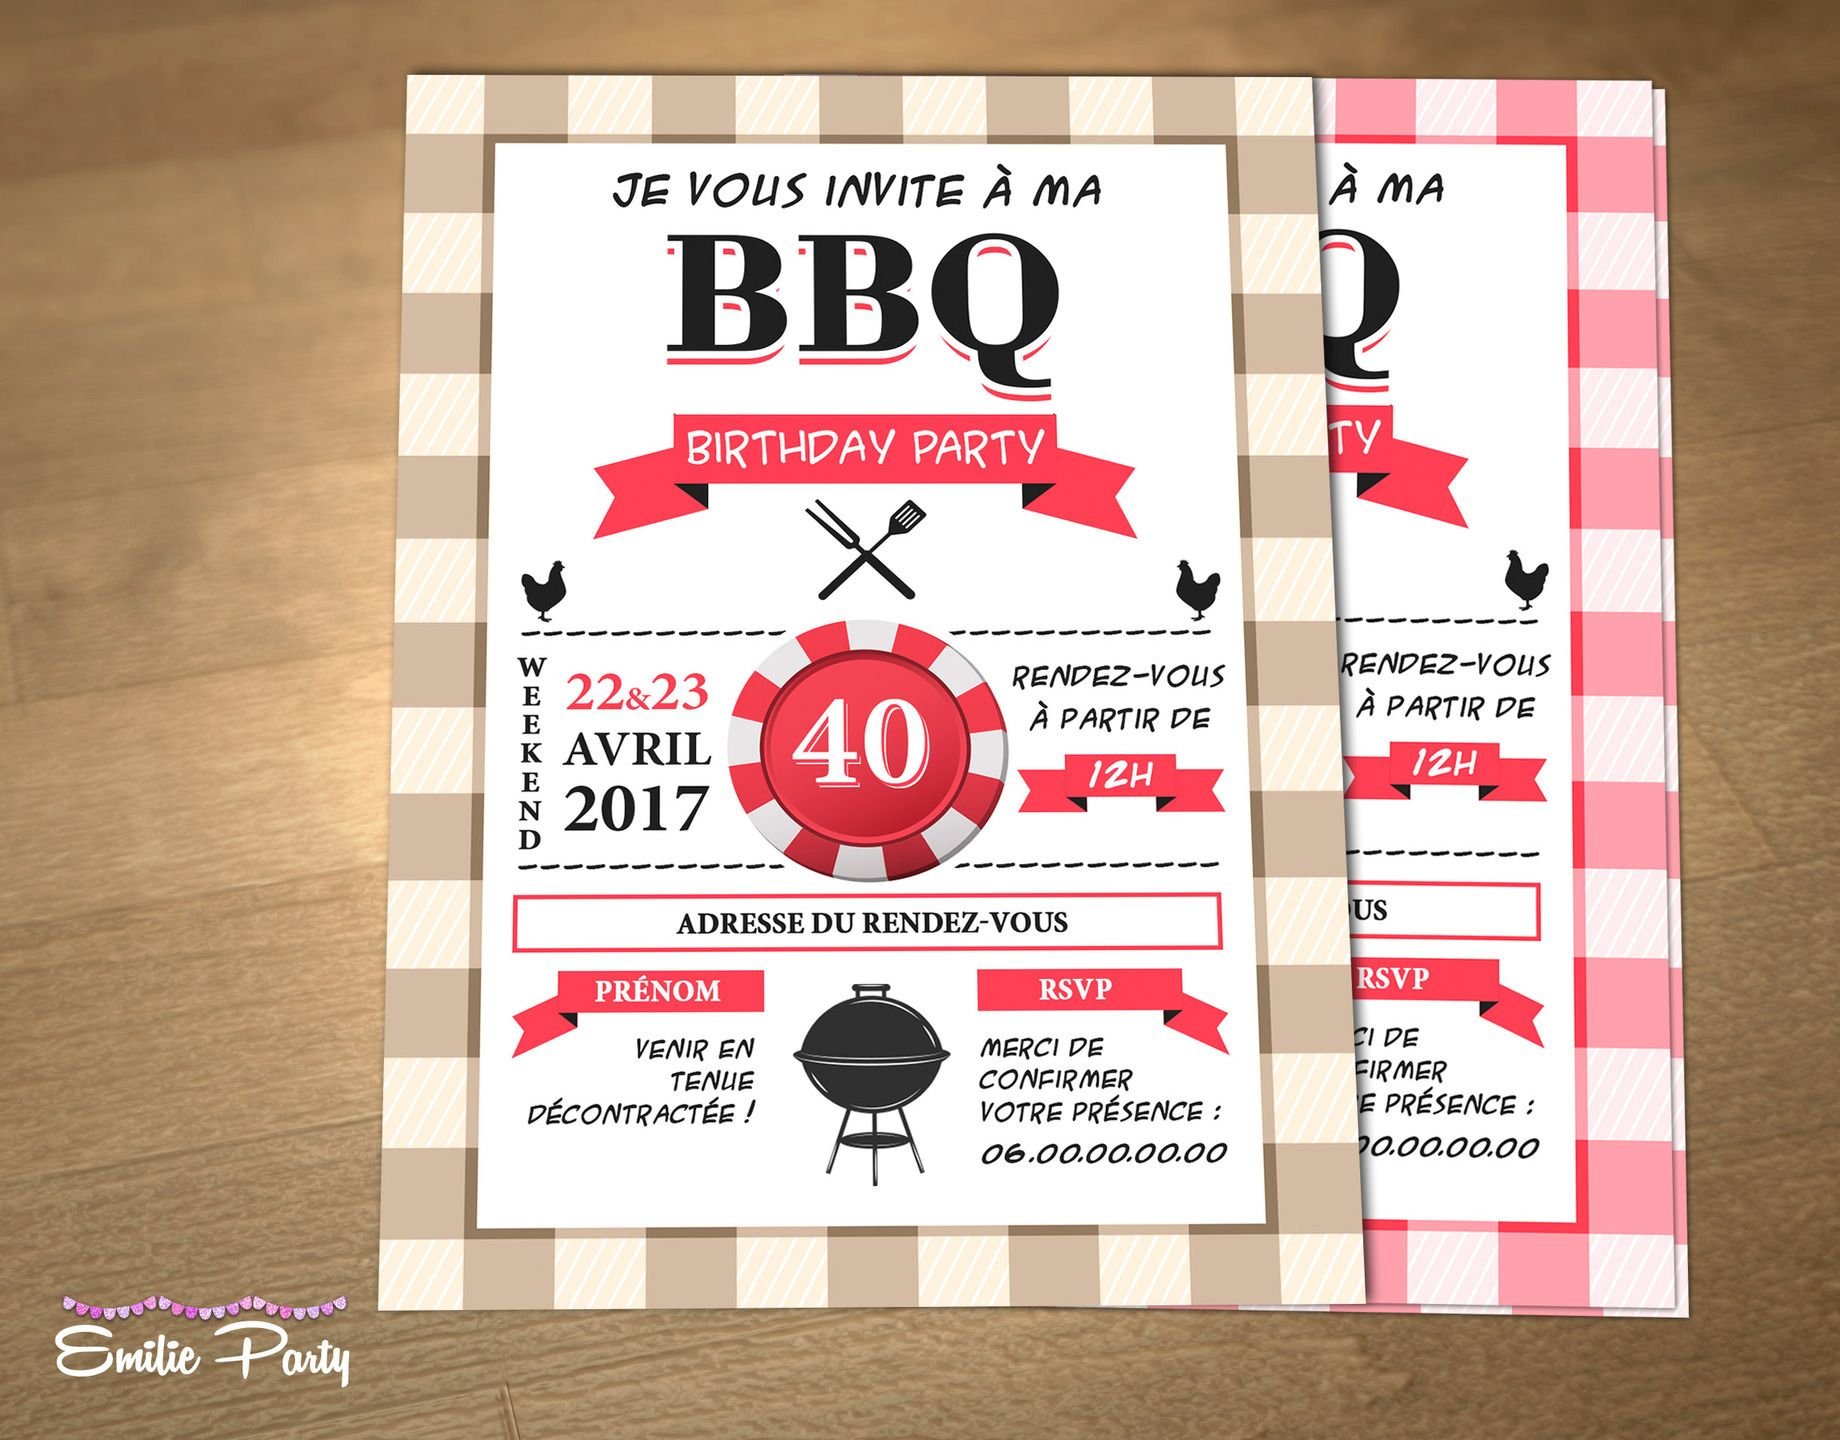 Personalized printable birthday invitation theme bbq party invitation danniversaire thme barbecue party personnalisable stopboris Choice Image